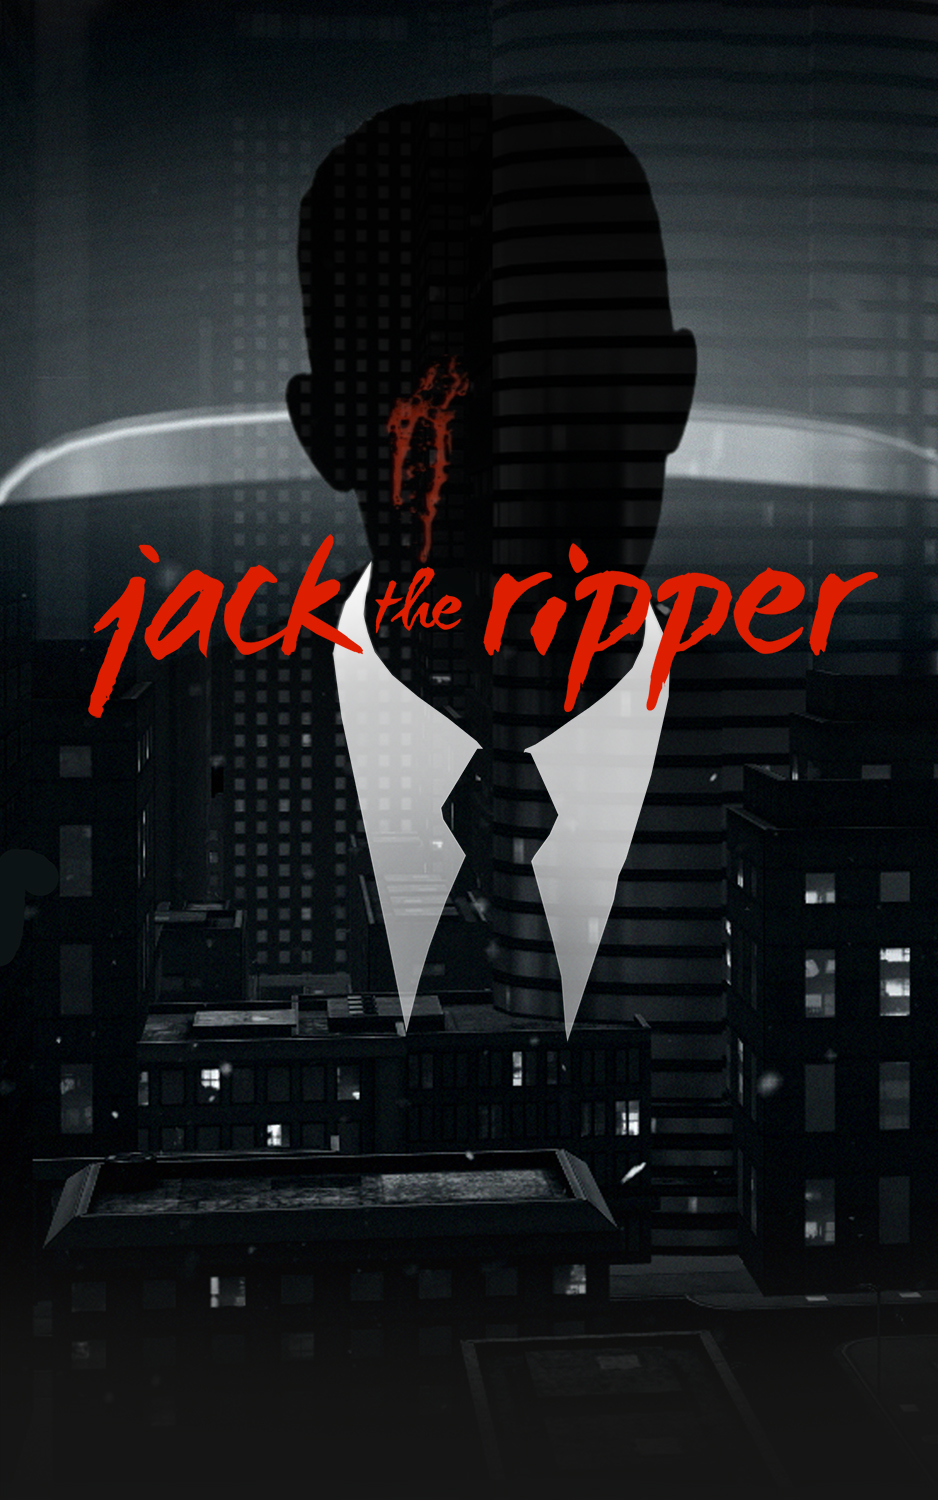 Jack the Ripper, Short Film